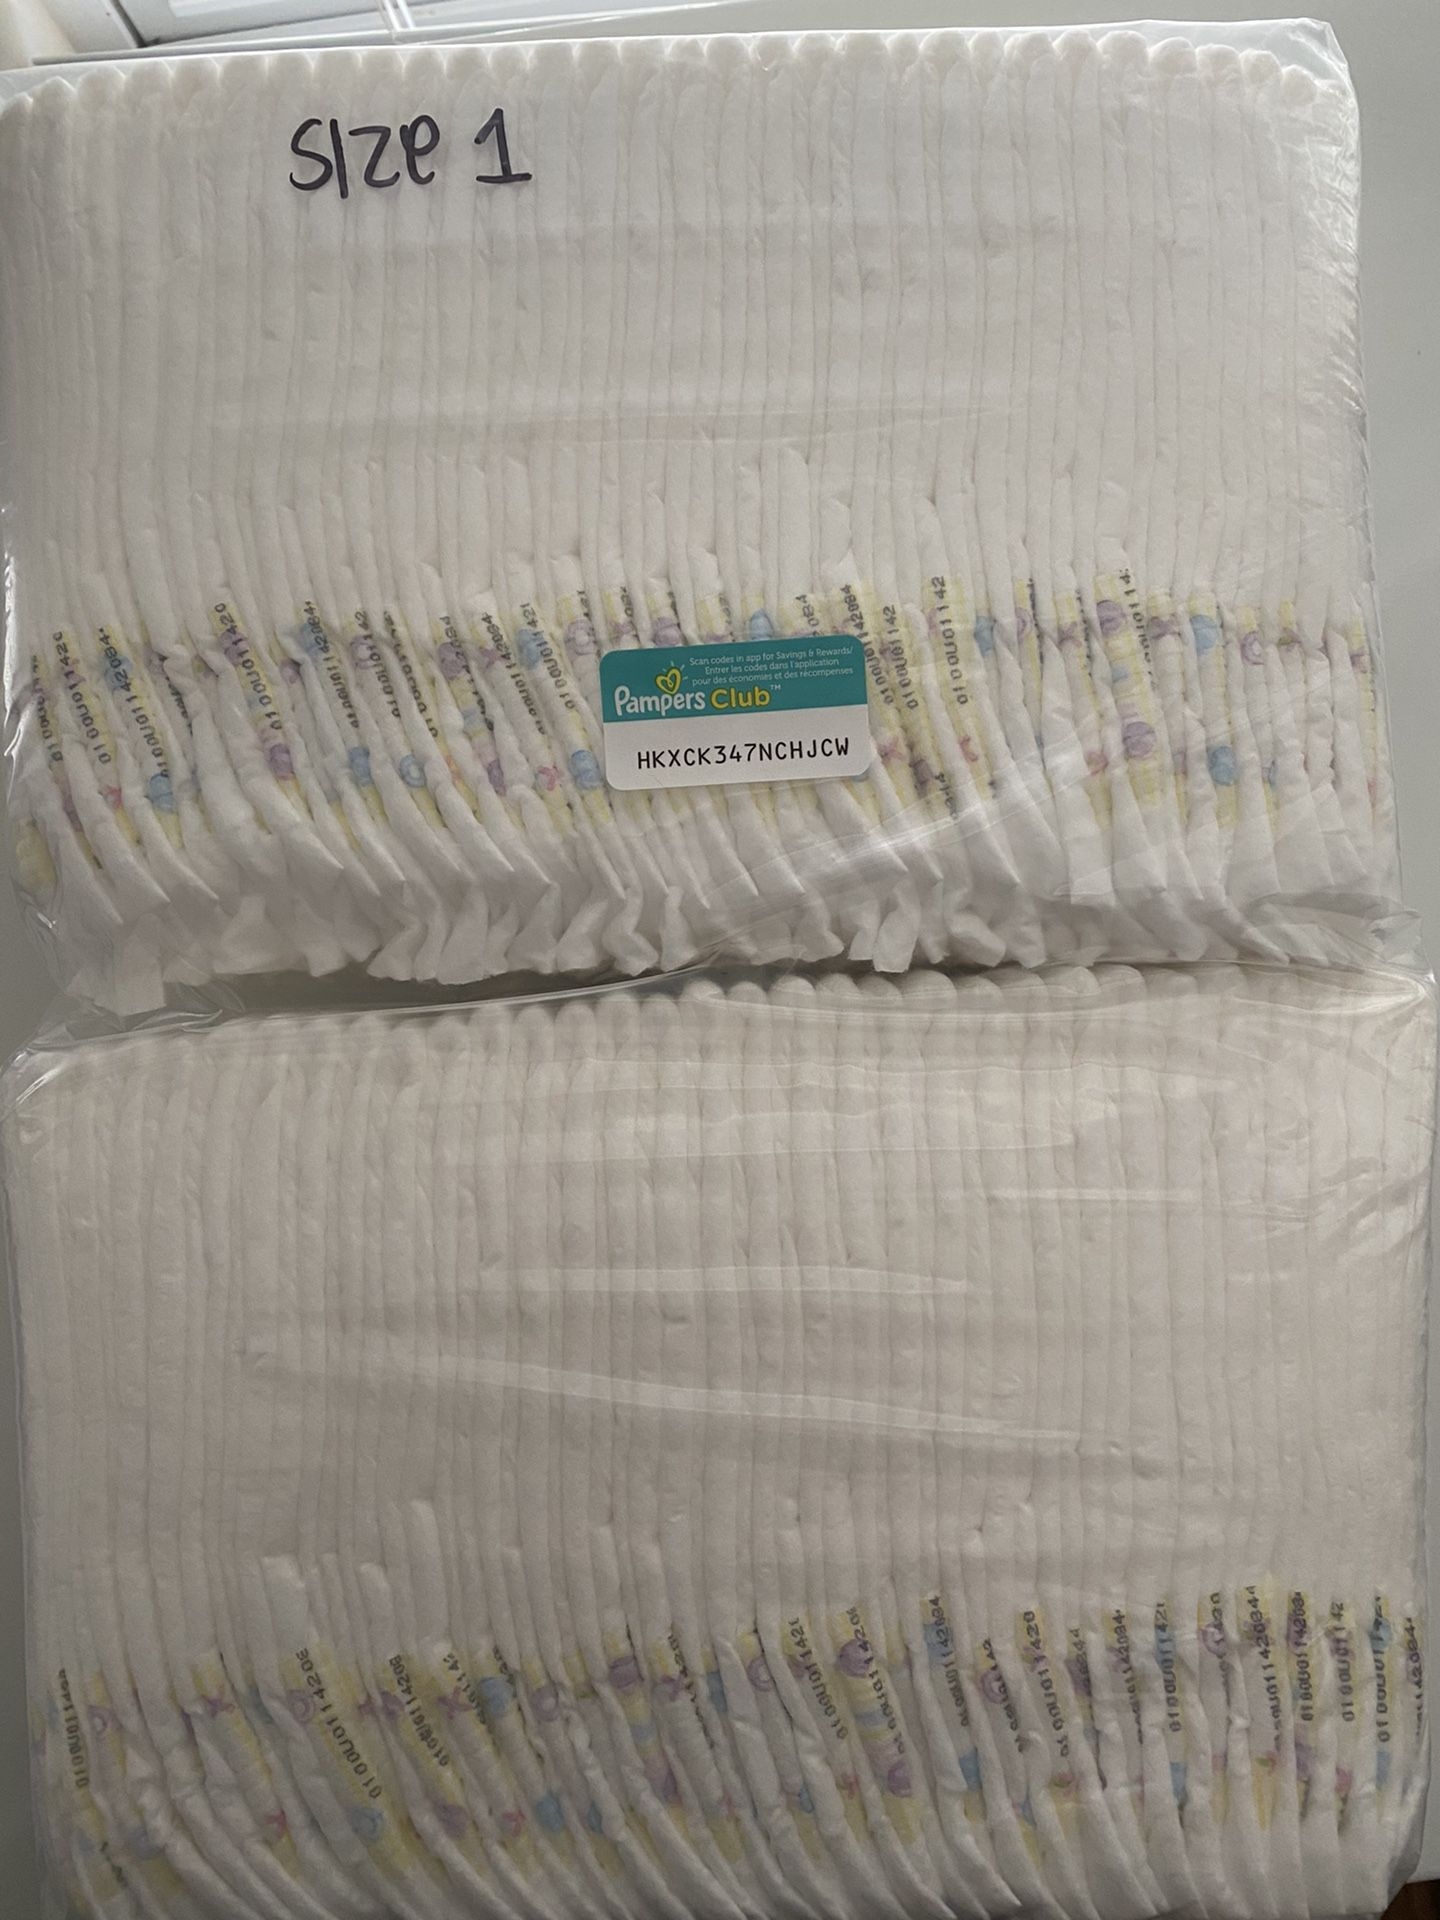 Size 1 pampers swaddlers - 66 diapers